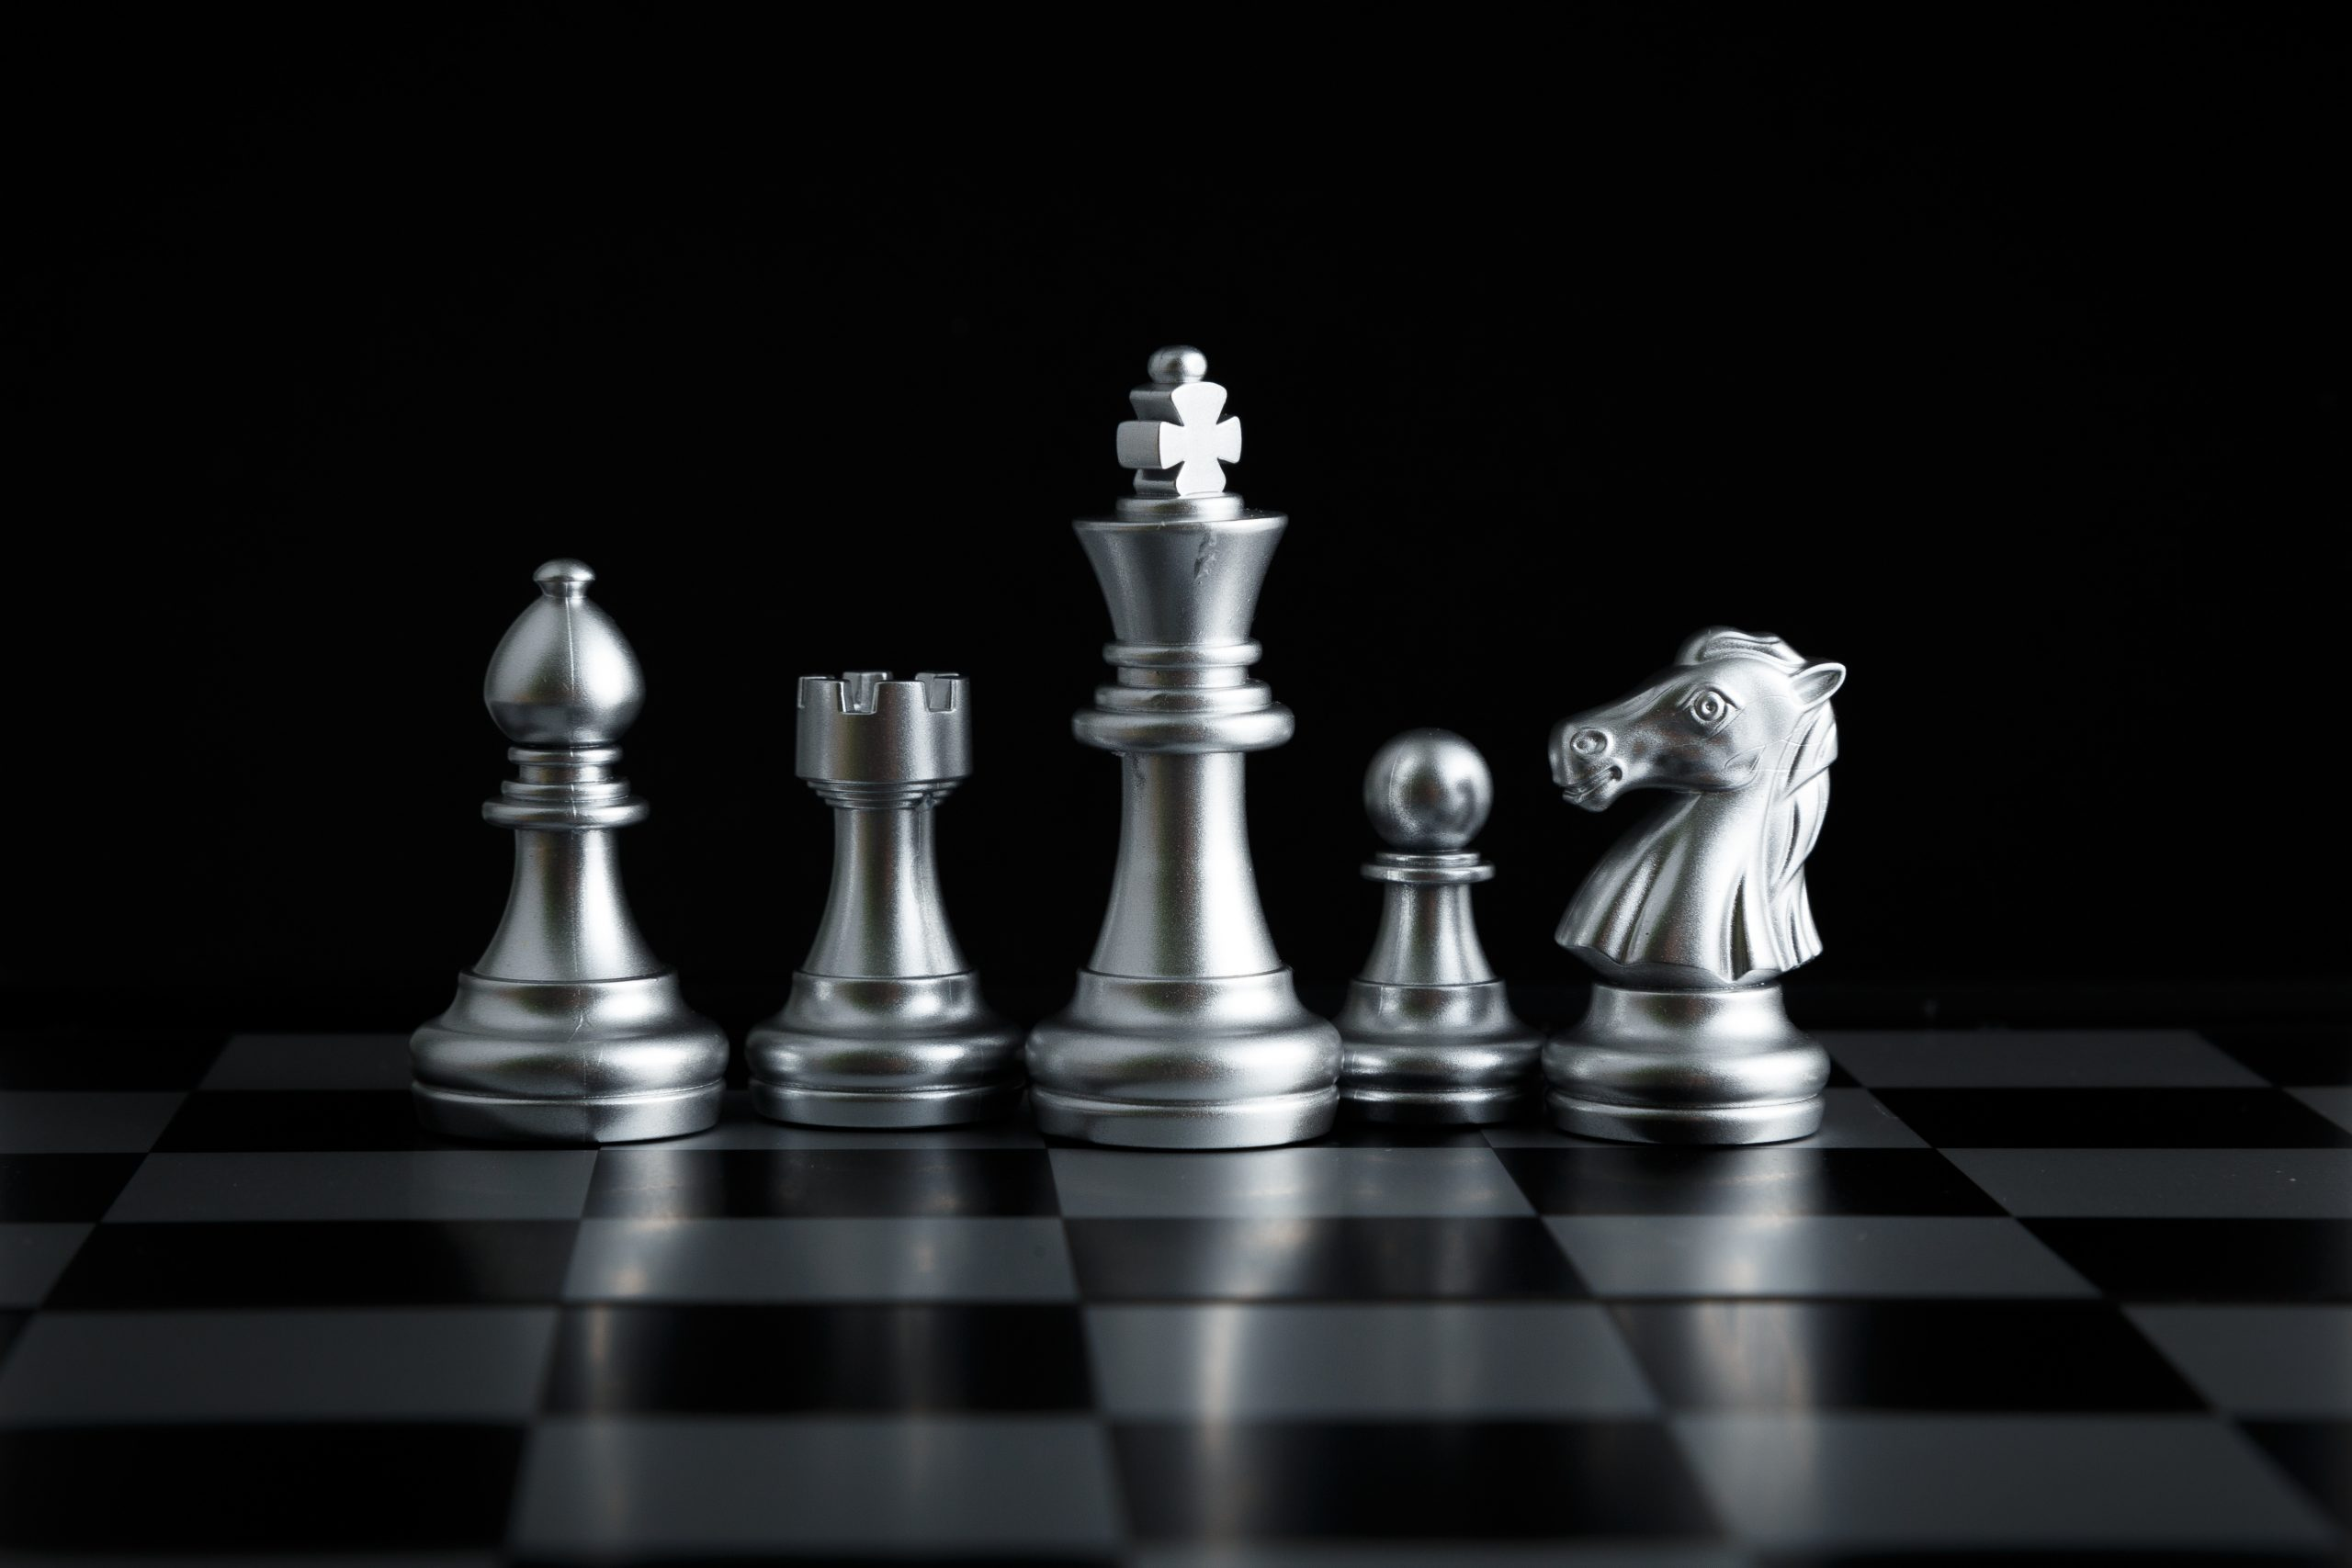 Lovepik_com-500211314-metal-texture-gold-and-silver-chess